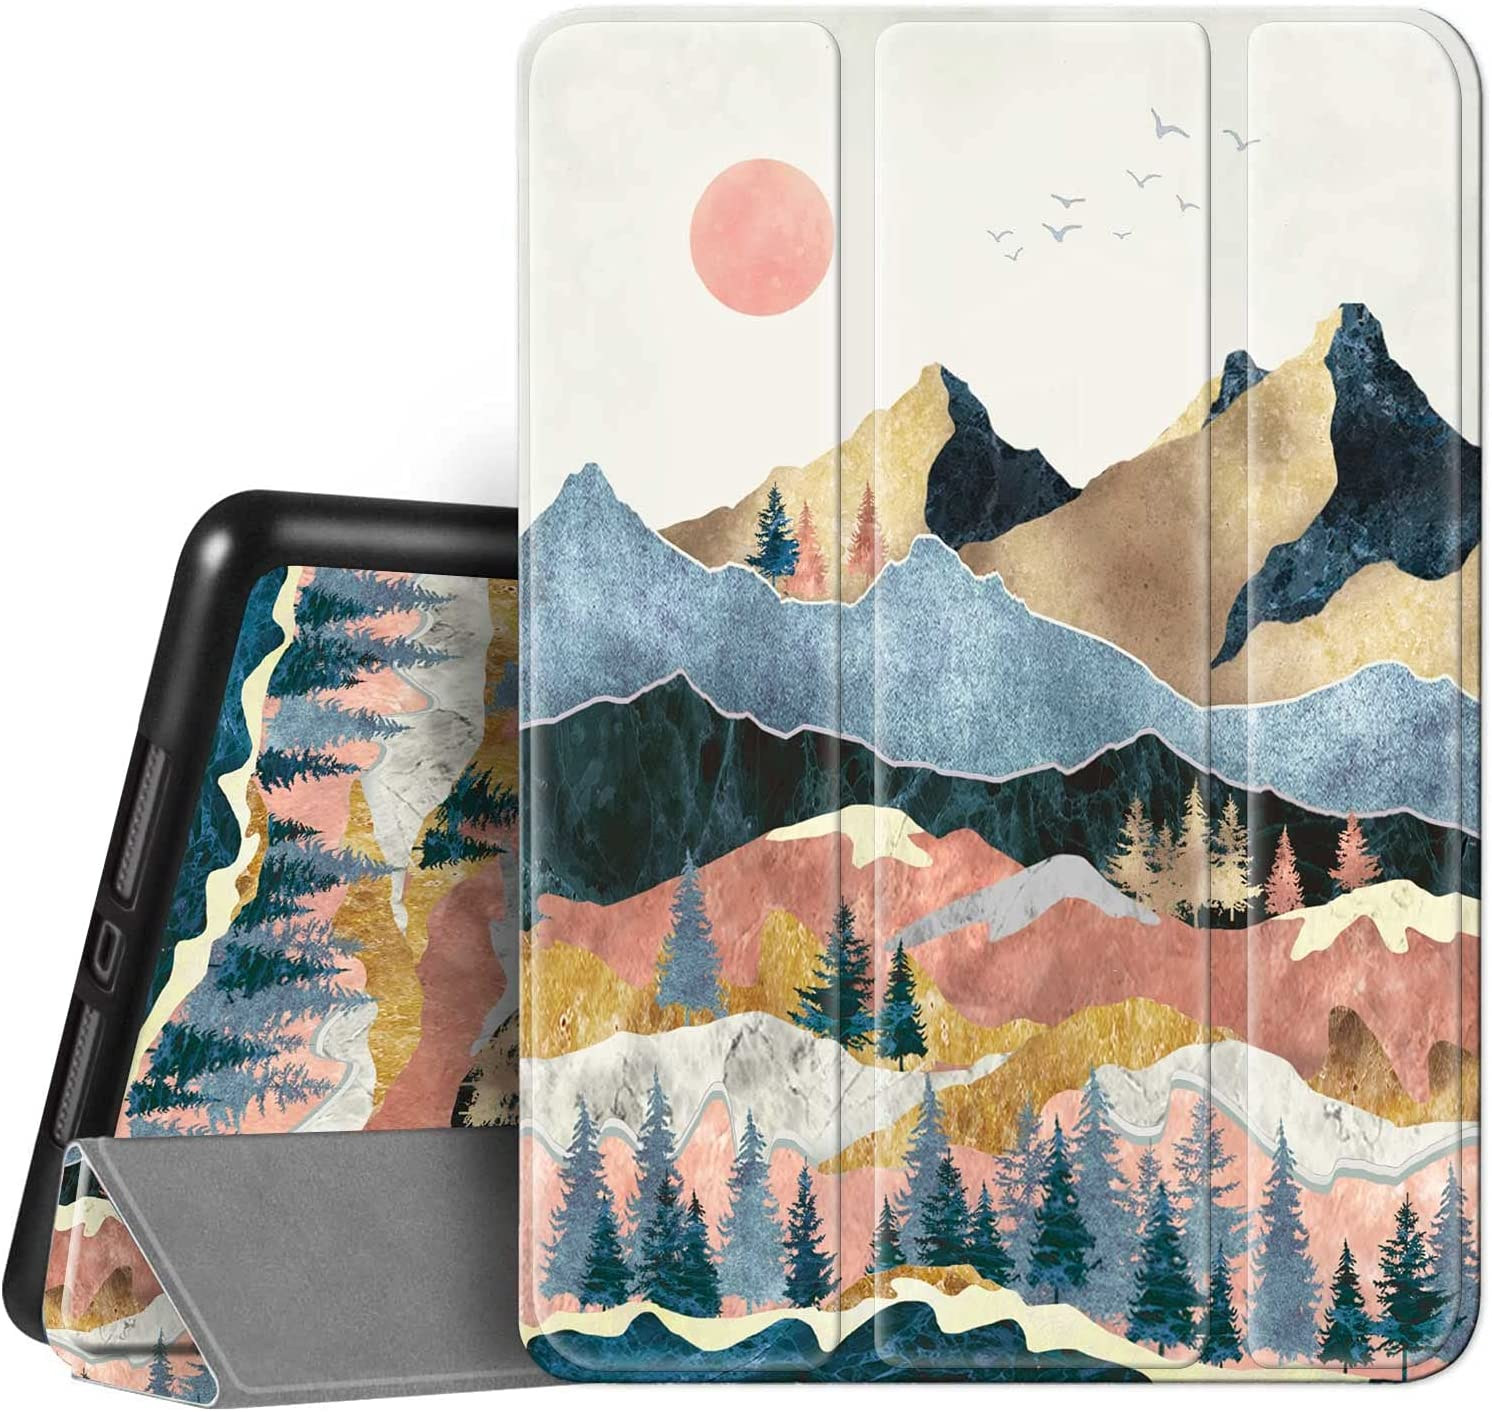 Hepix 5 ☆ very popular iPad 9th Max 52% OFF 8th 7th Landscape 1 Generation Mountain Case